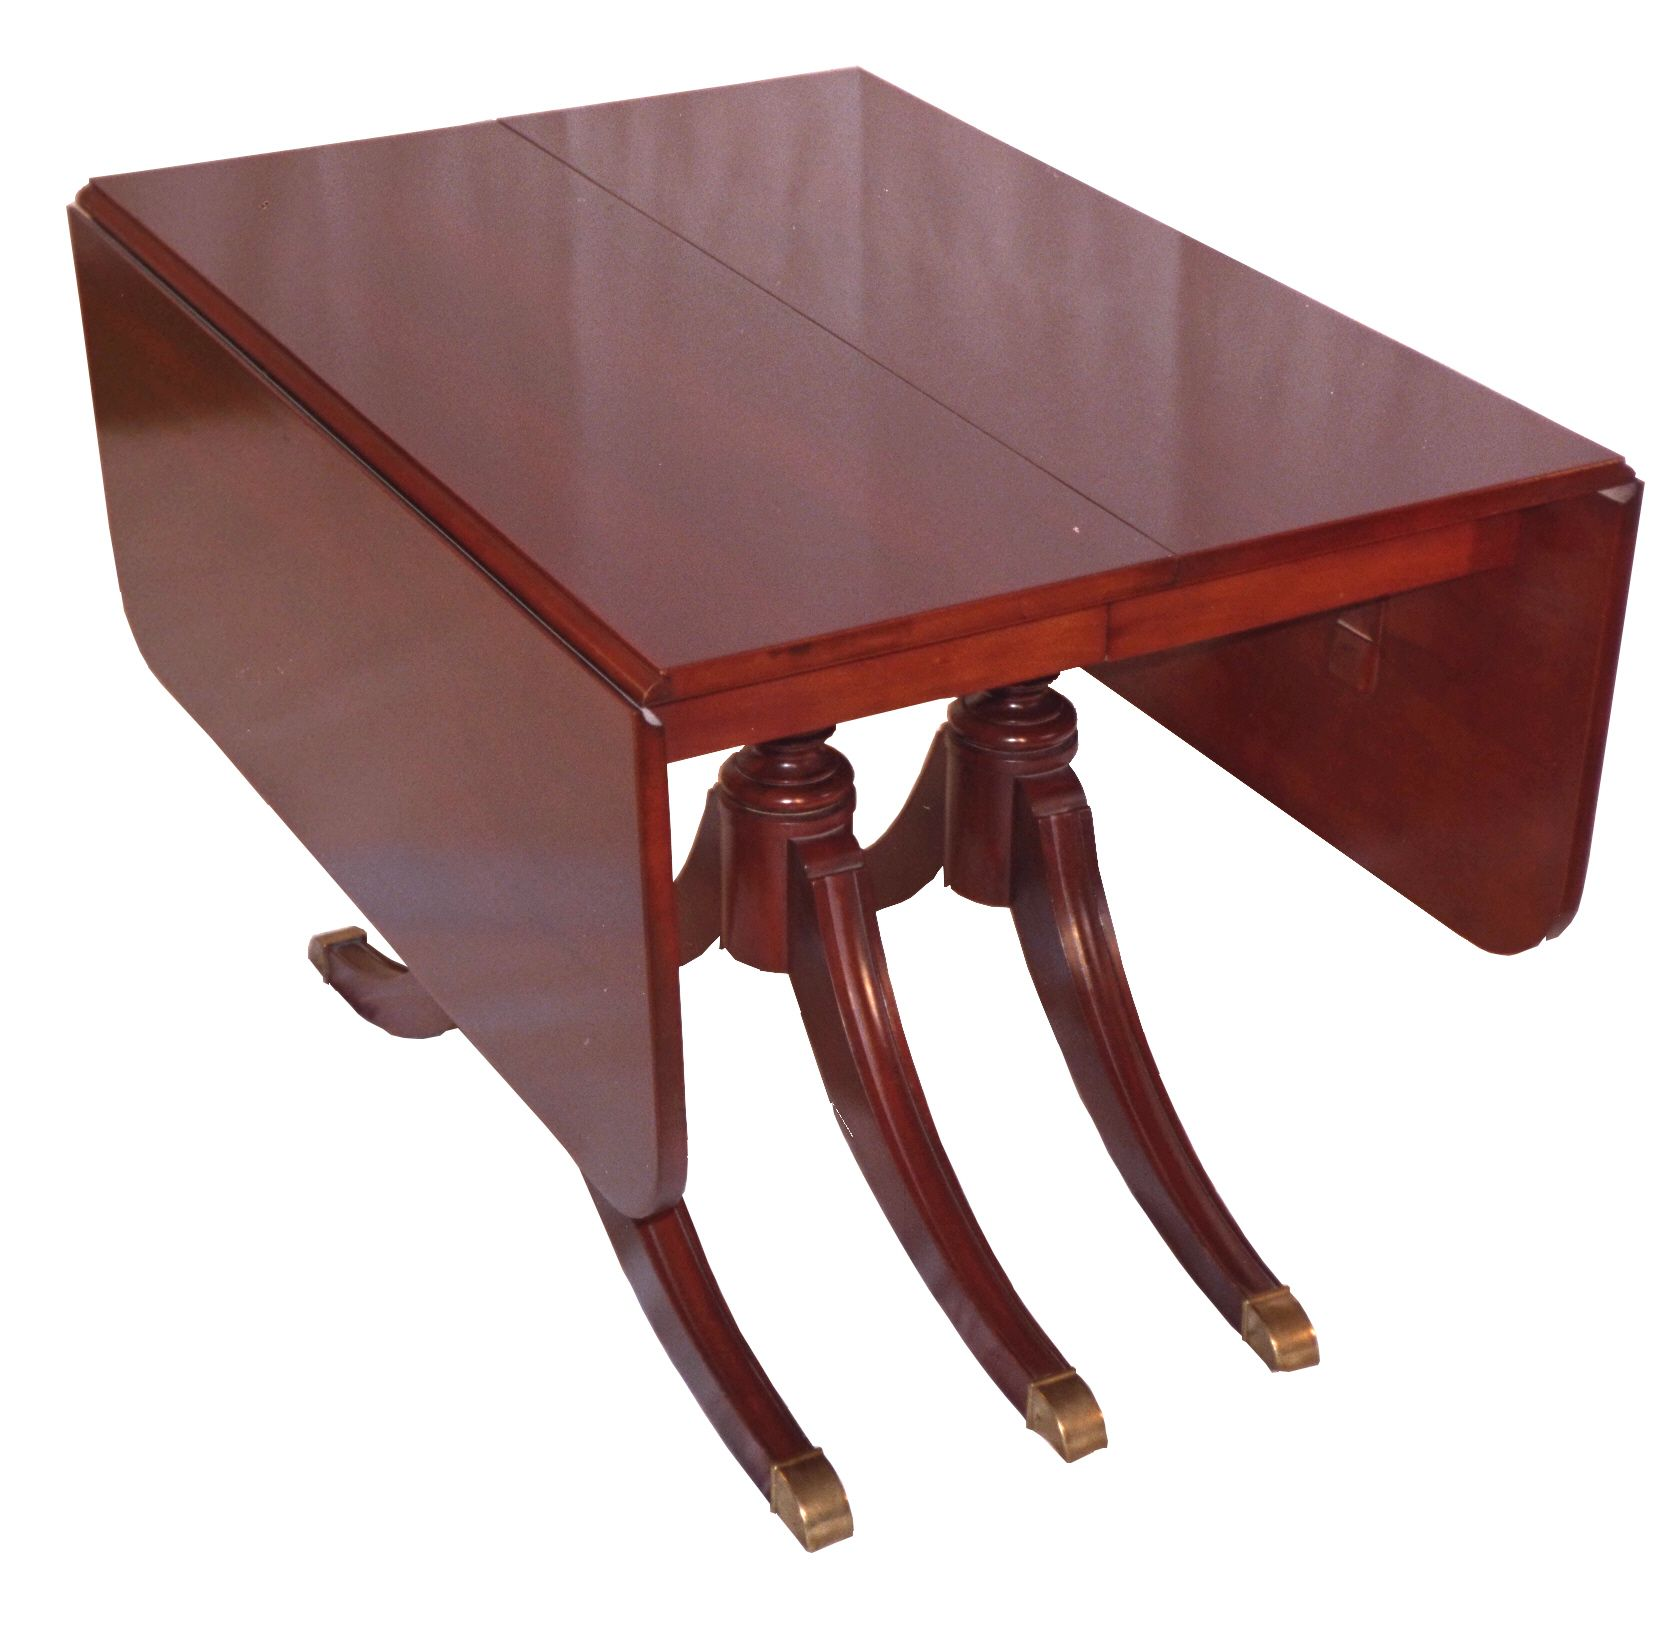 What our dining room Duncan Phyfe table (+ 4 inserts) will look ...